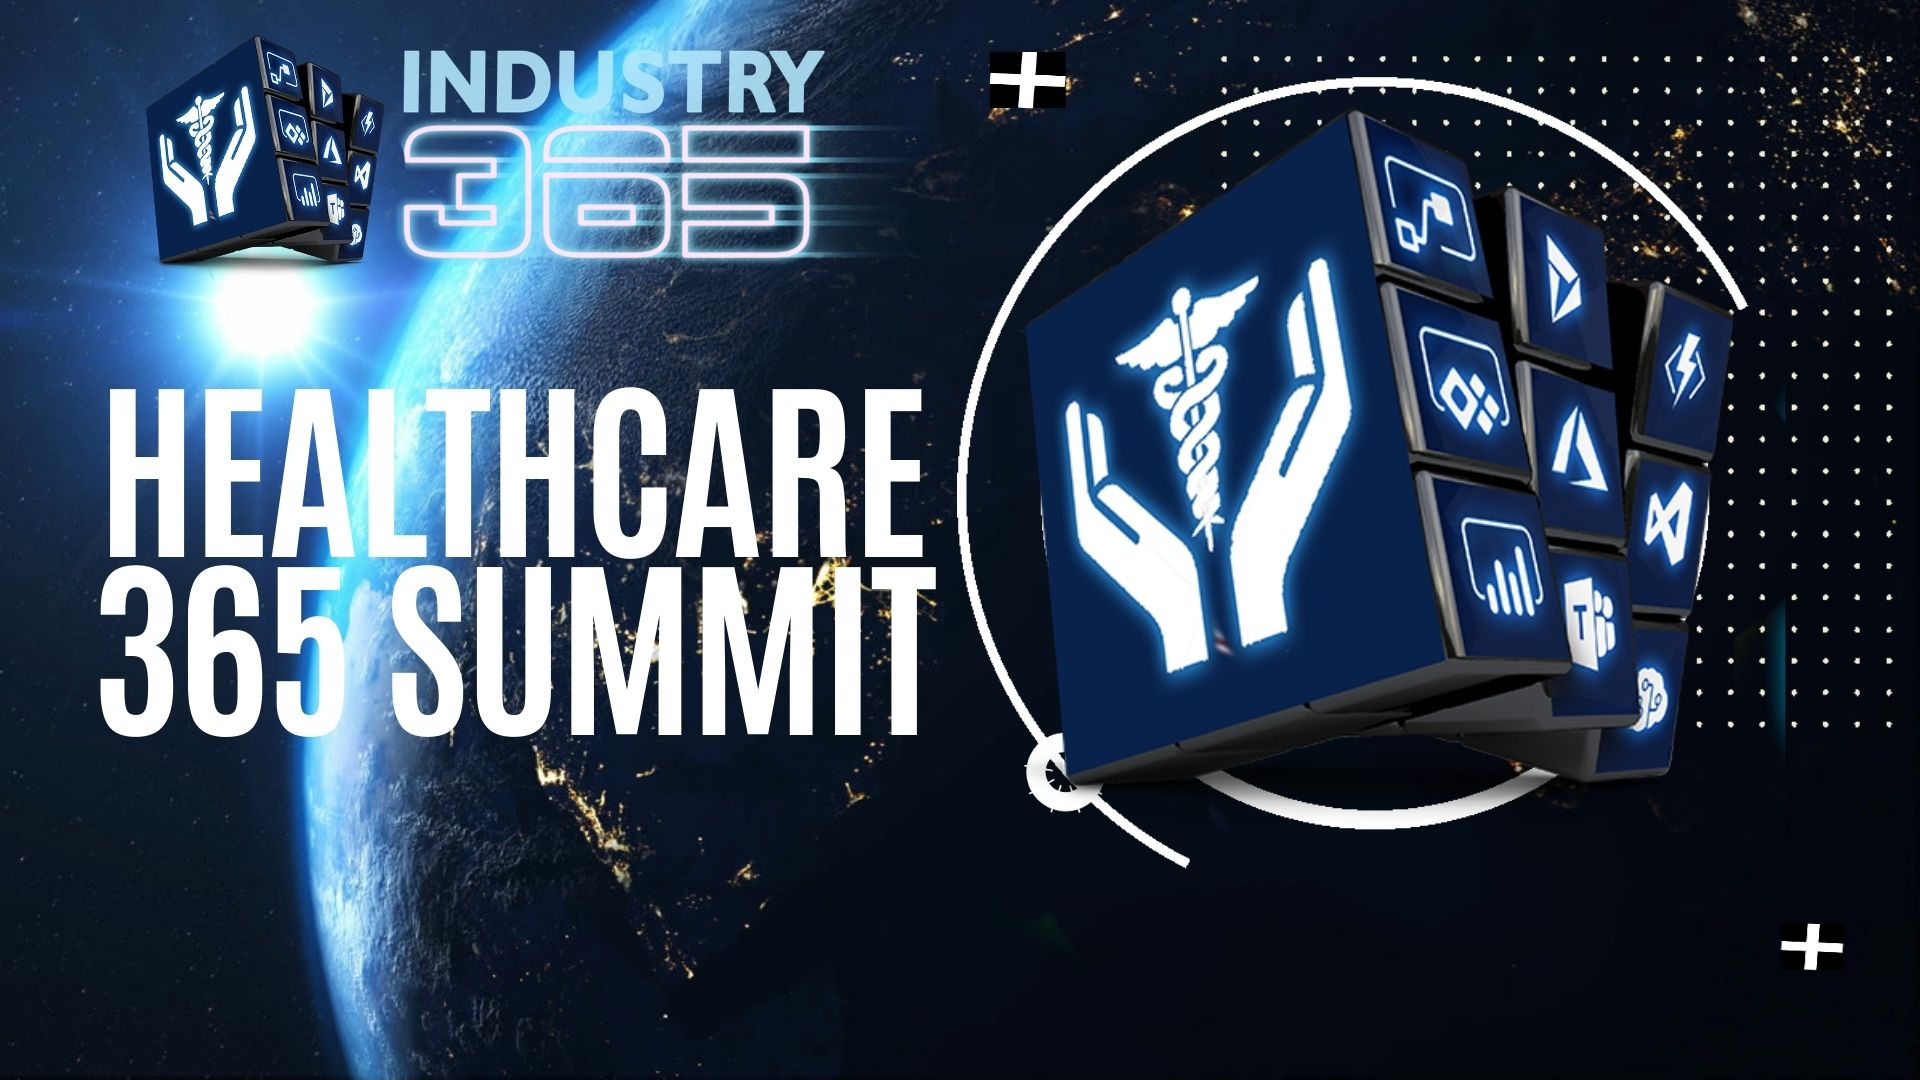 Microsoft Healthcare Industry Conference